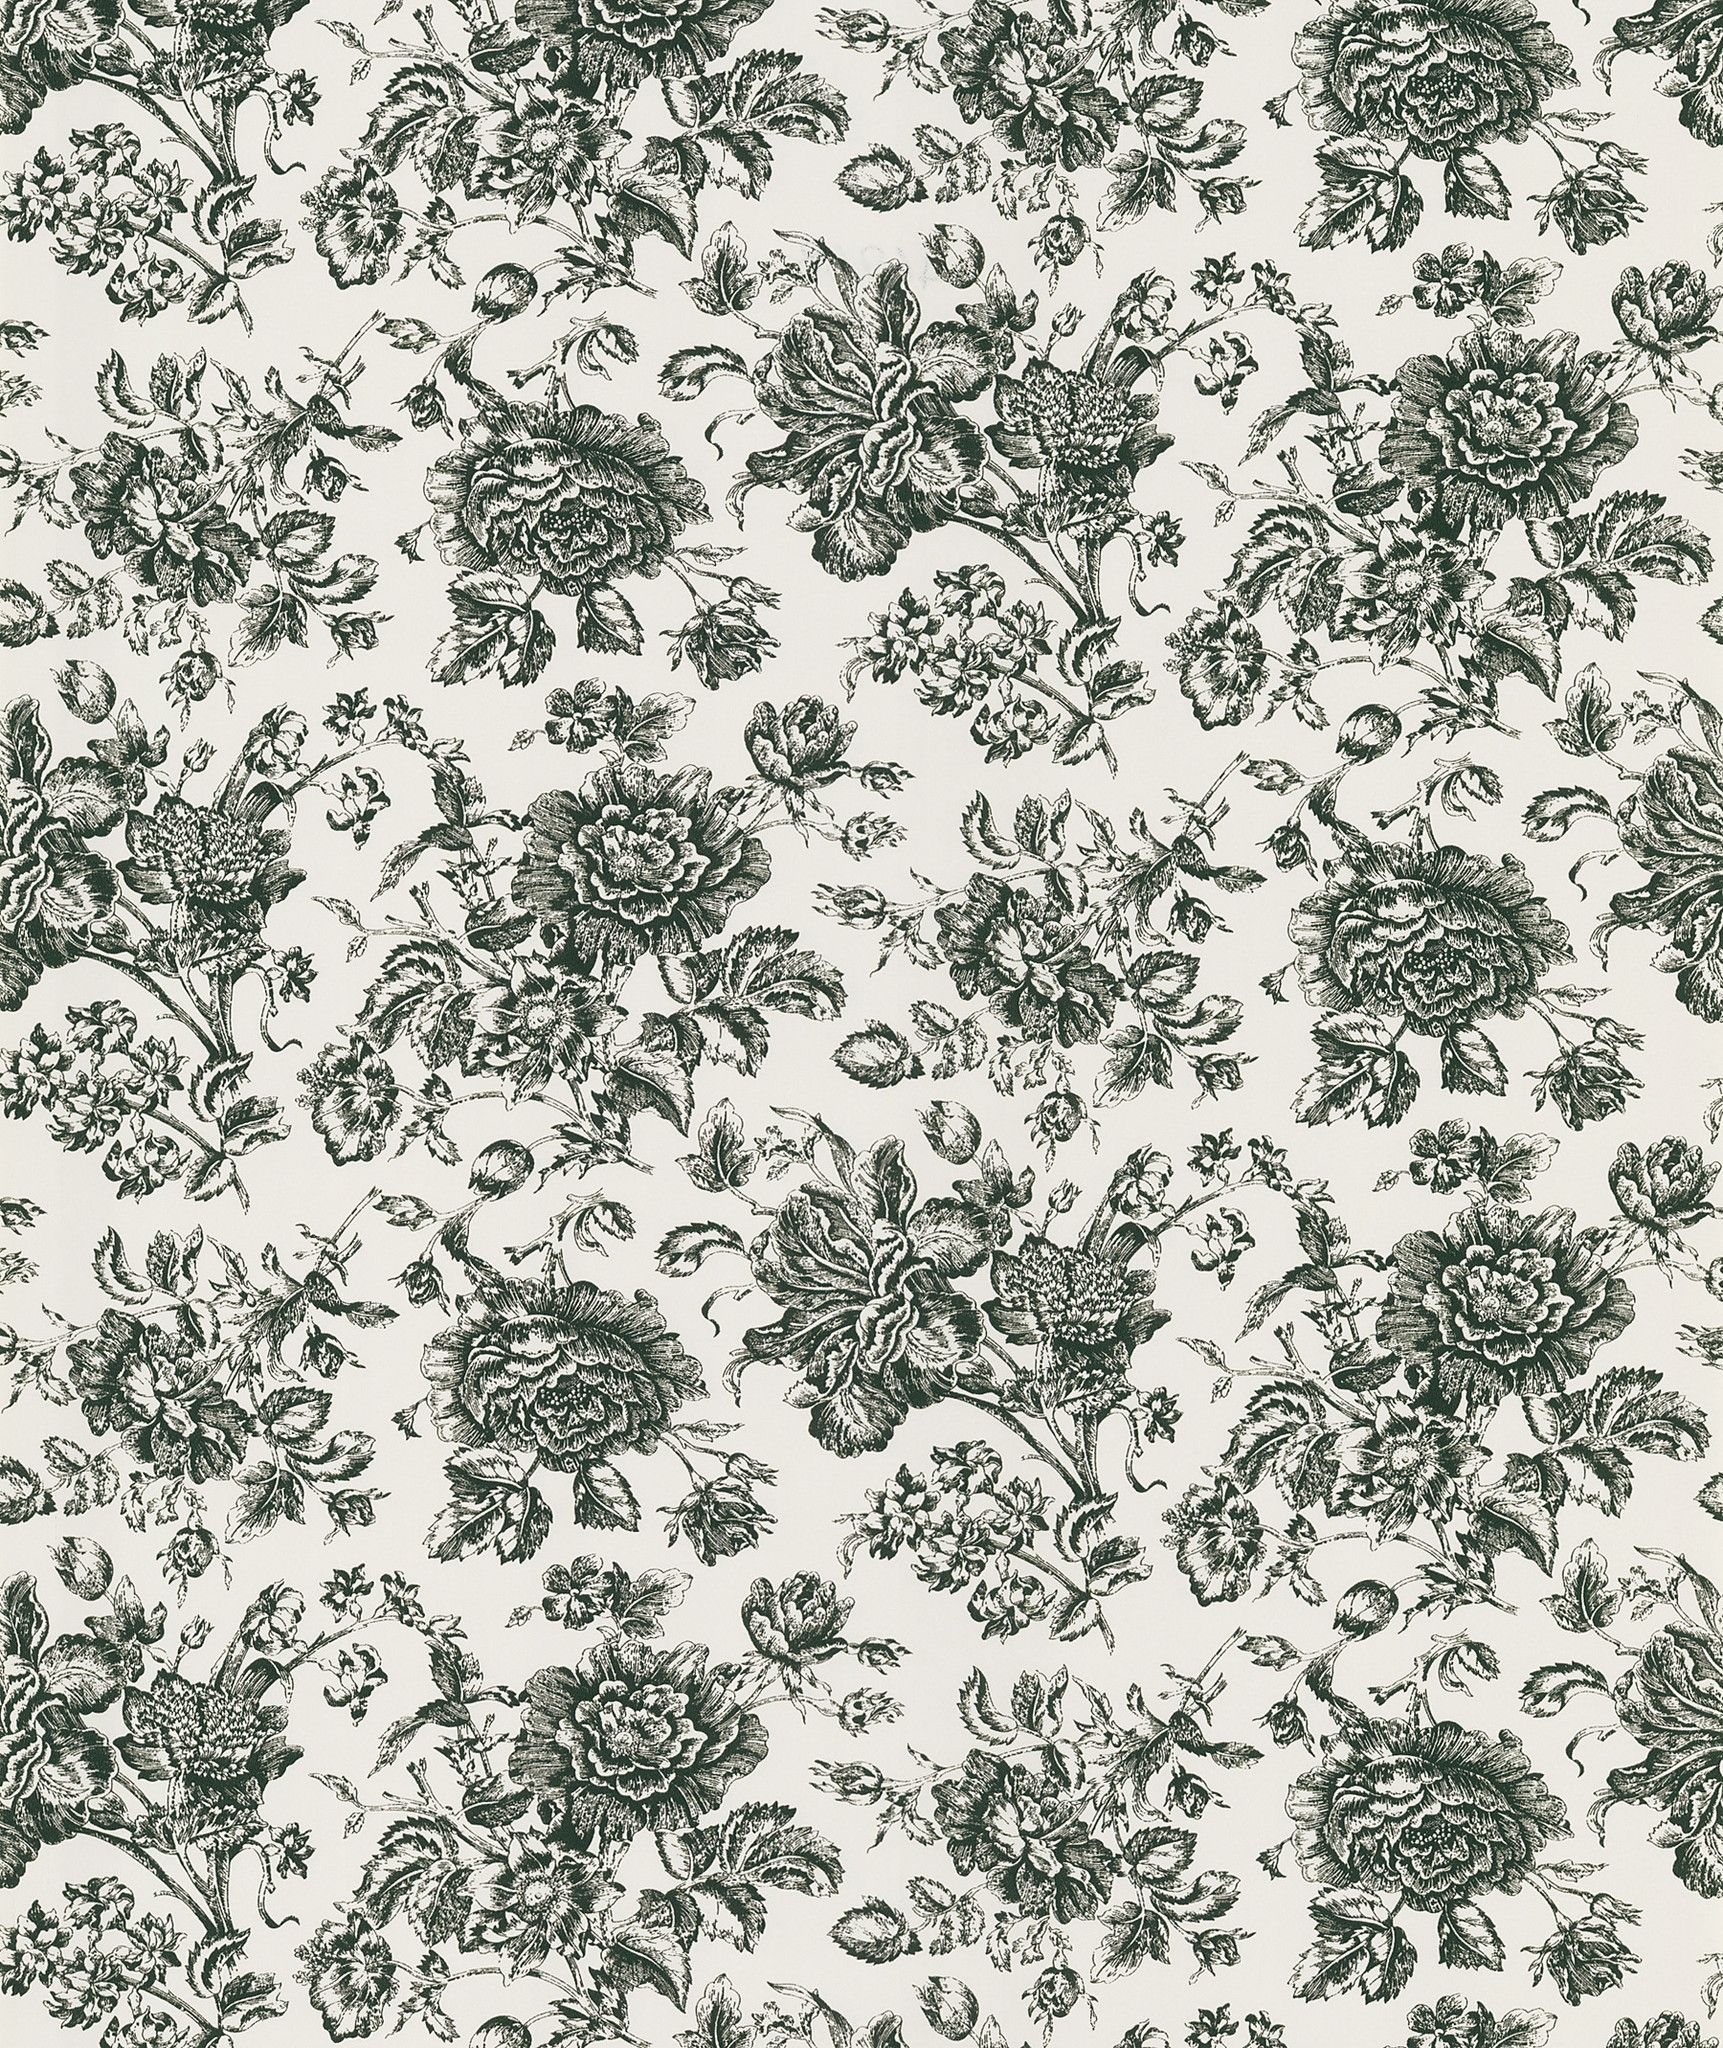 Poetic Black Flowers Grace Walls With The Elegant Charm Of A Toile Style  Wallpaper. This